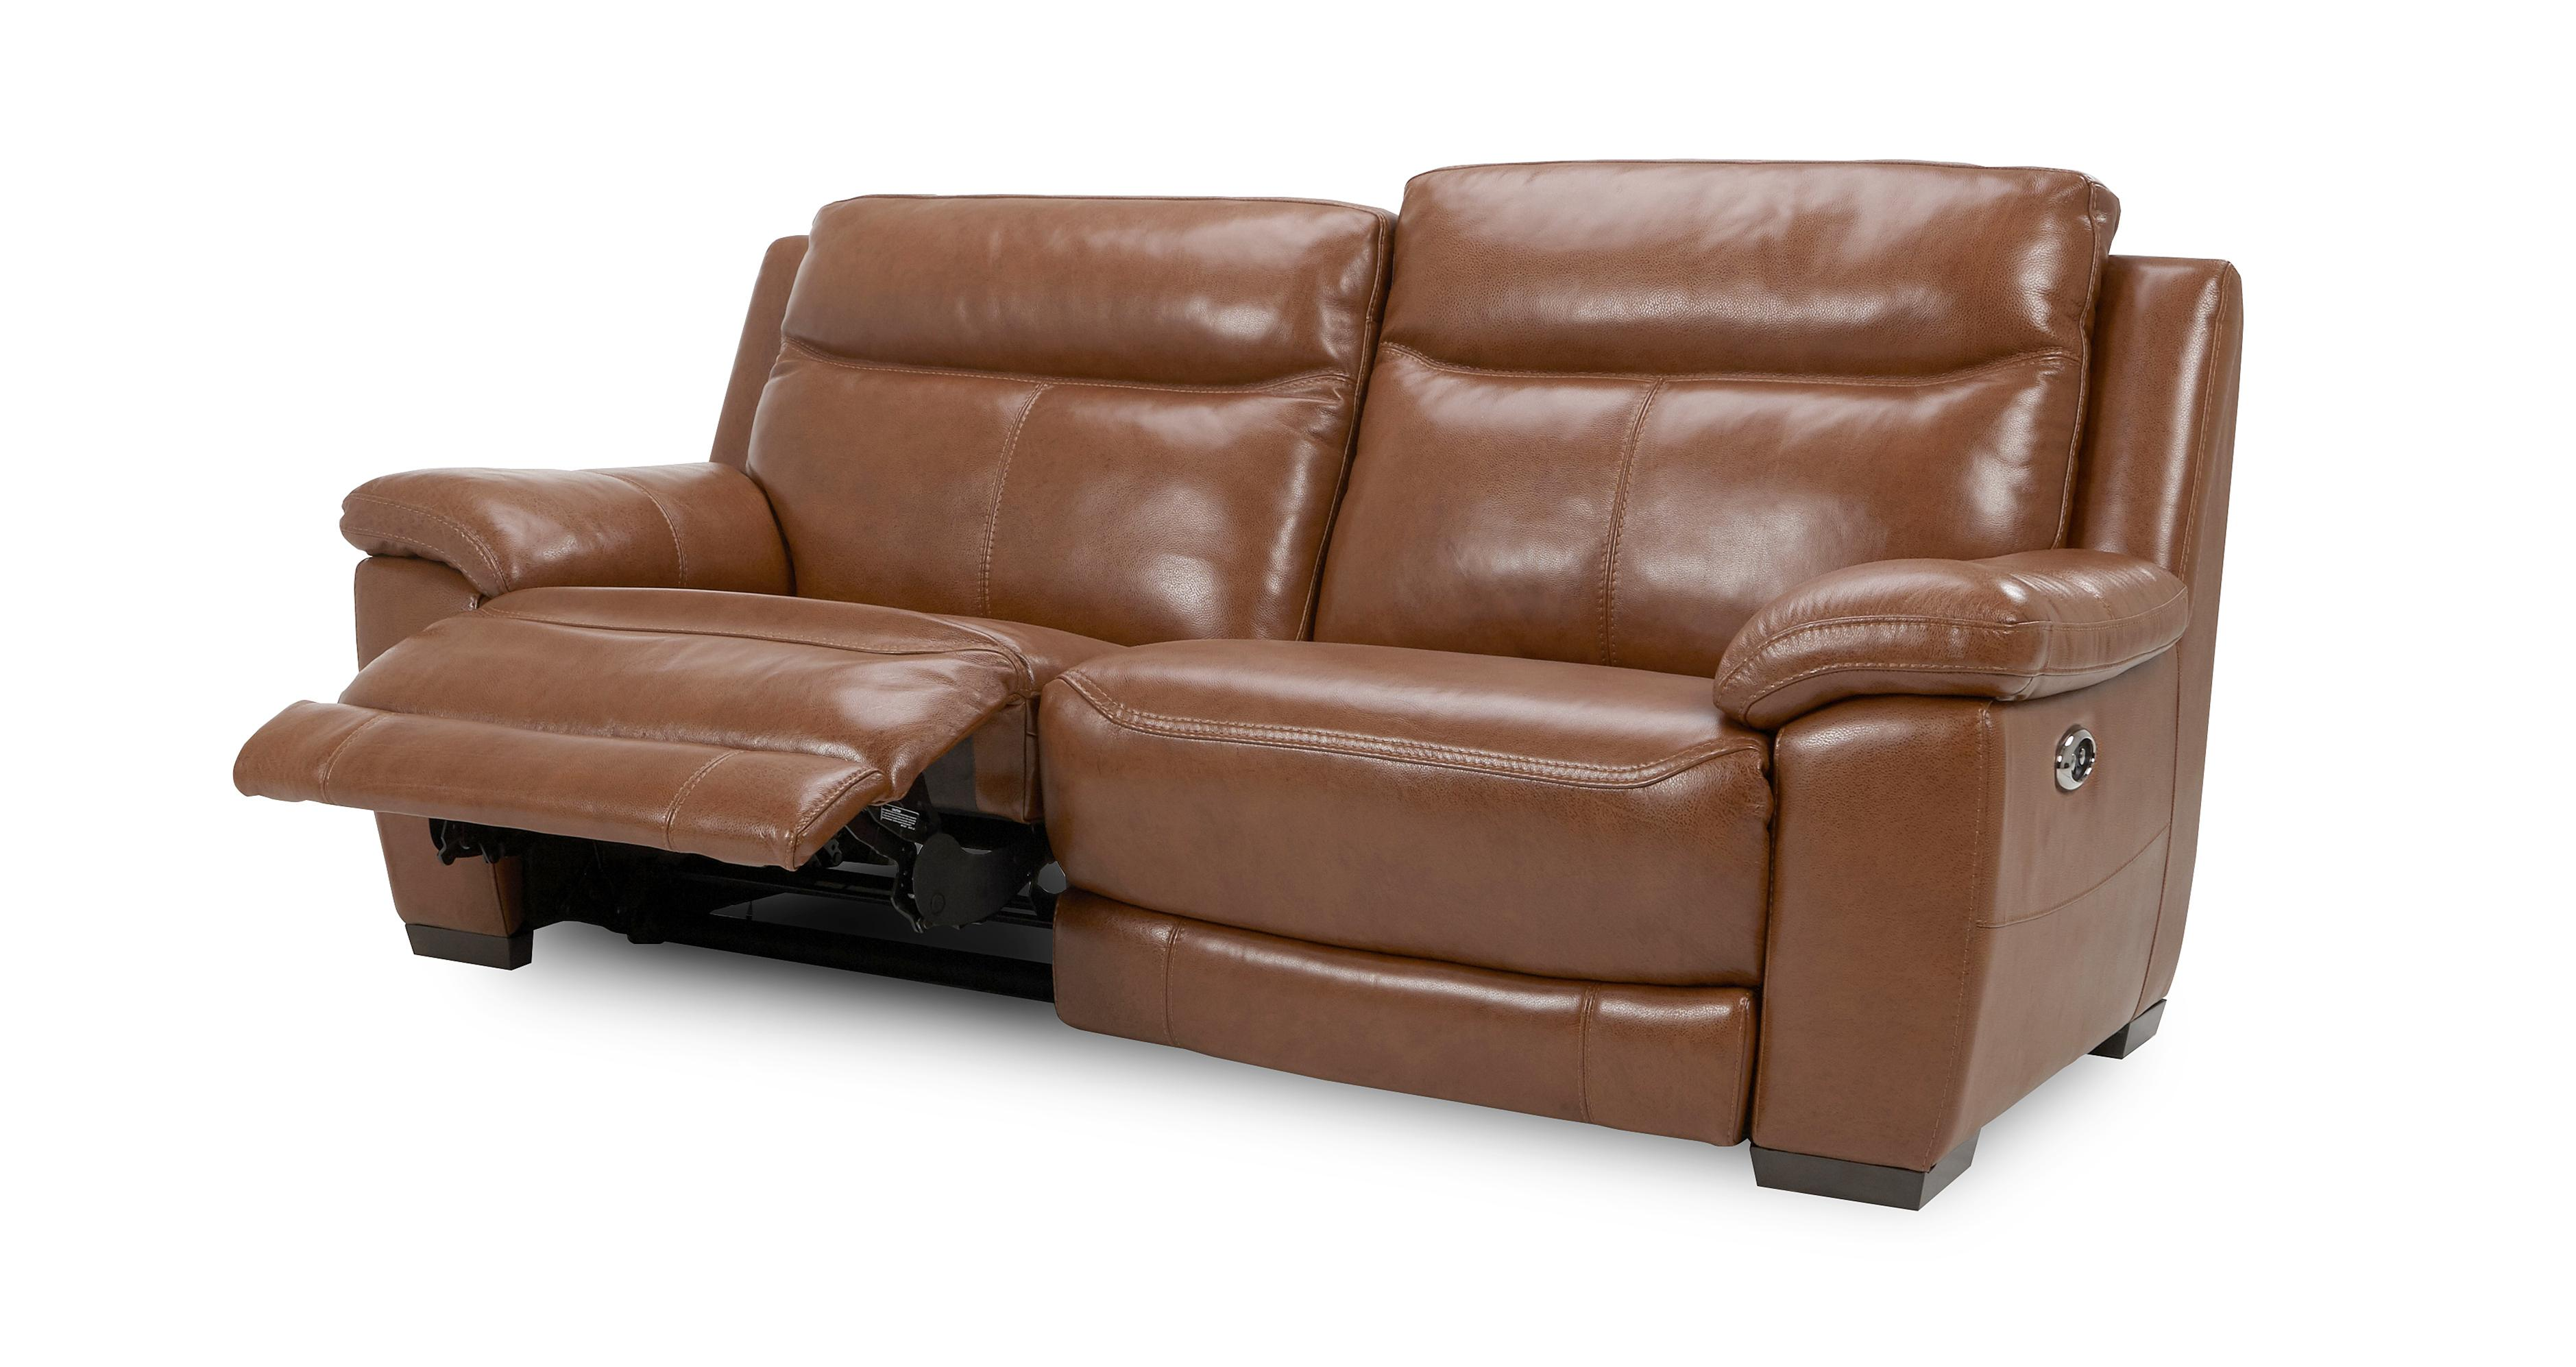 Dfs Sofa Care Liaison 3 Seater Electric Recliner Brazil With Leather